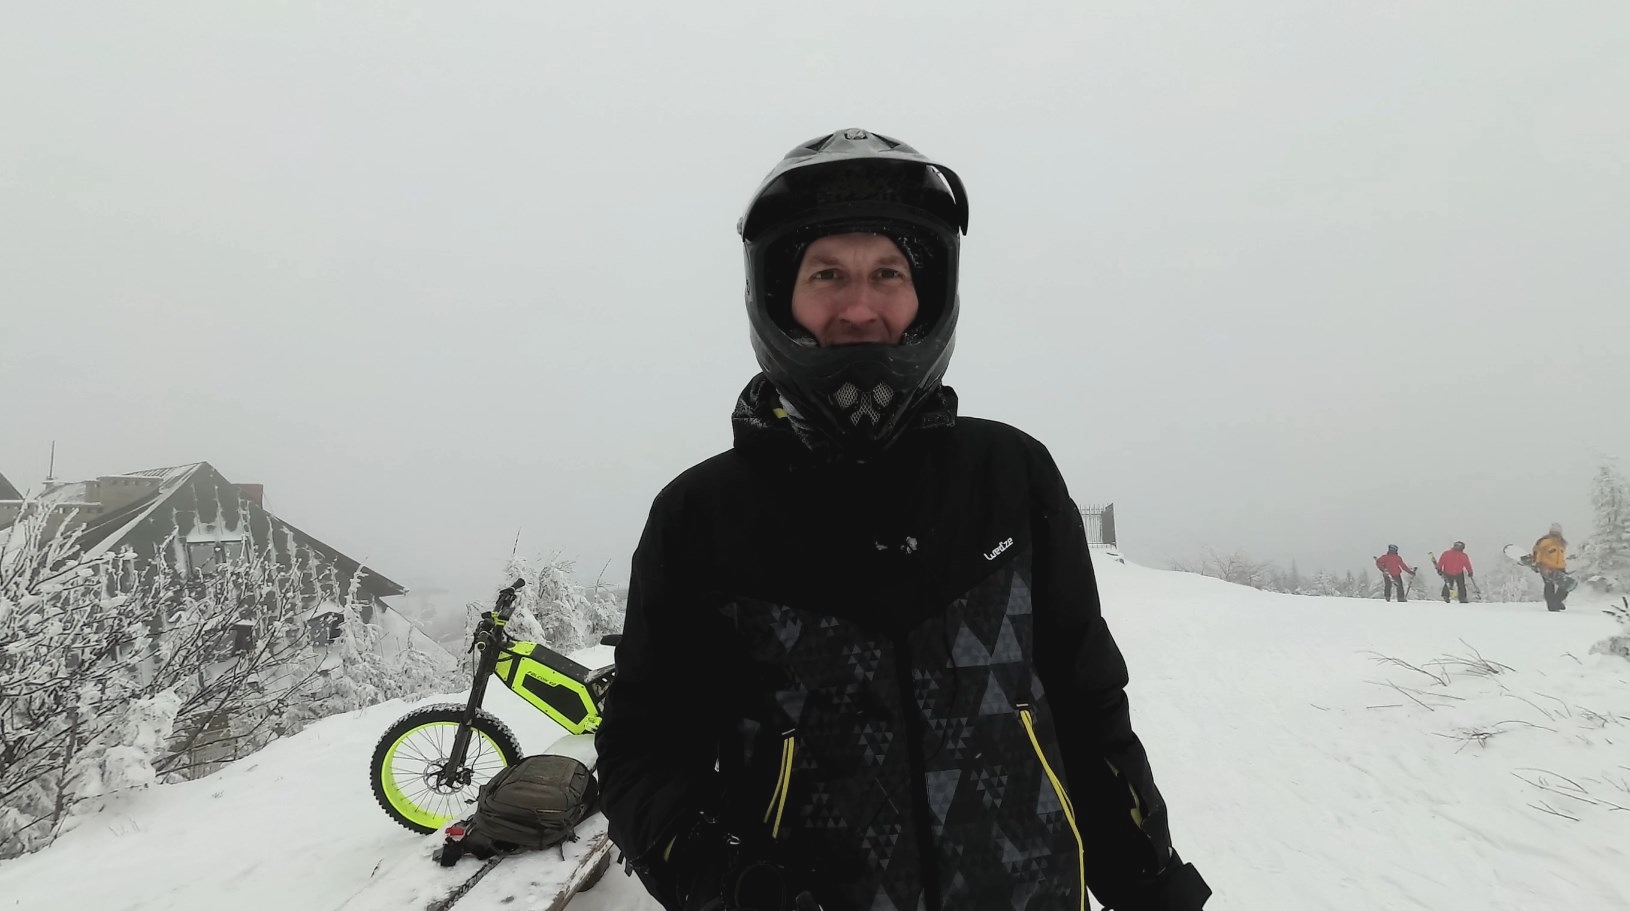 YI009601.MP4_snapshot_04.37.jpg